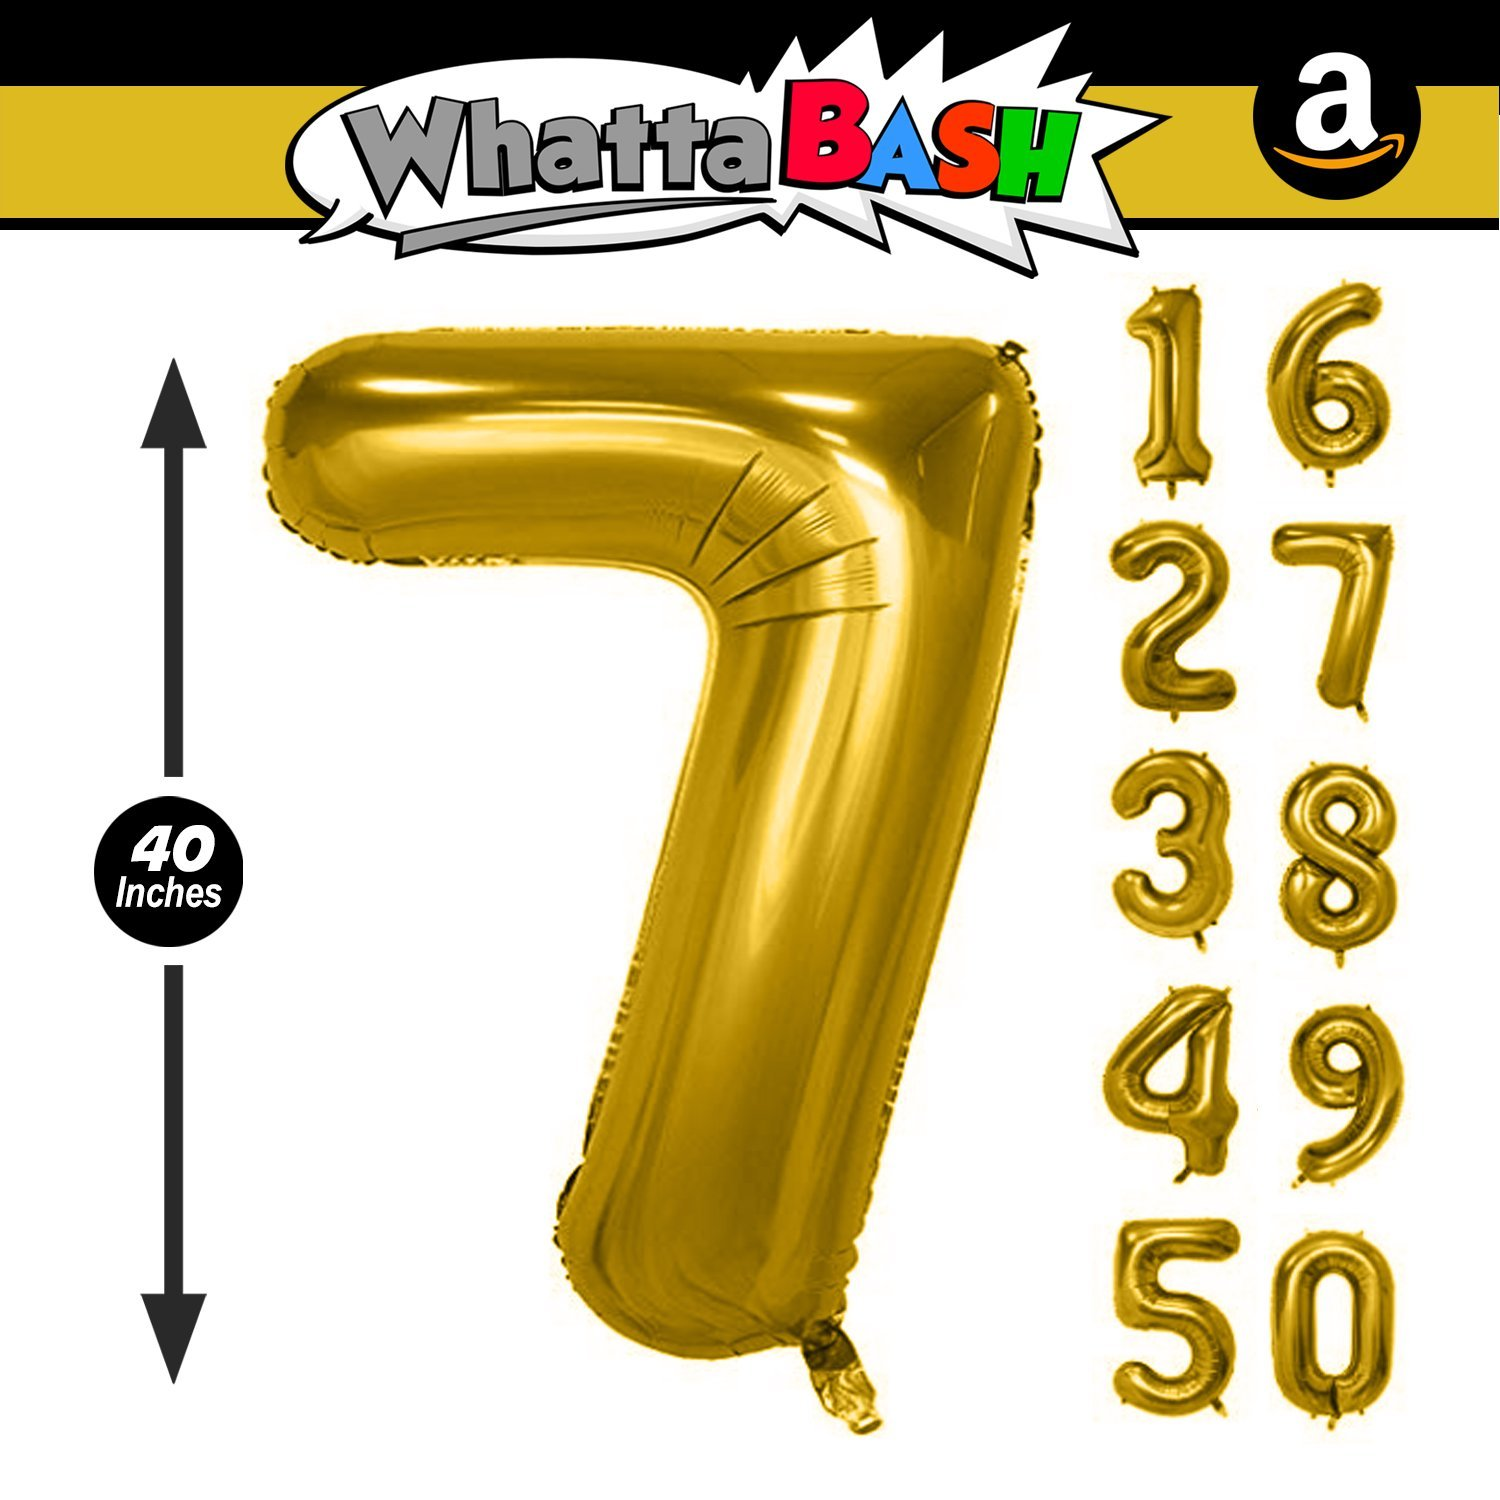 Black,Number 7 40 Inch Black Jumbo Number 7 Seven Balloon Giant Large Balloons Foil Decoration Supplies For Birthday Party Wedding Bridal Shower Anniversary Engagement Photo Shoot Gift Accessories